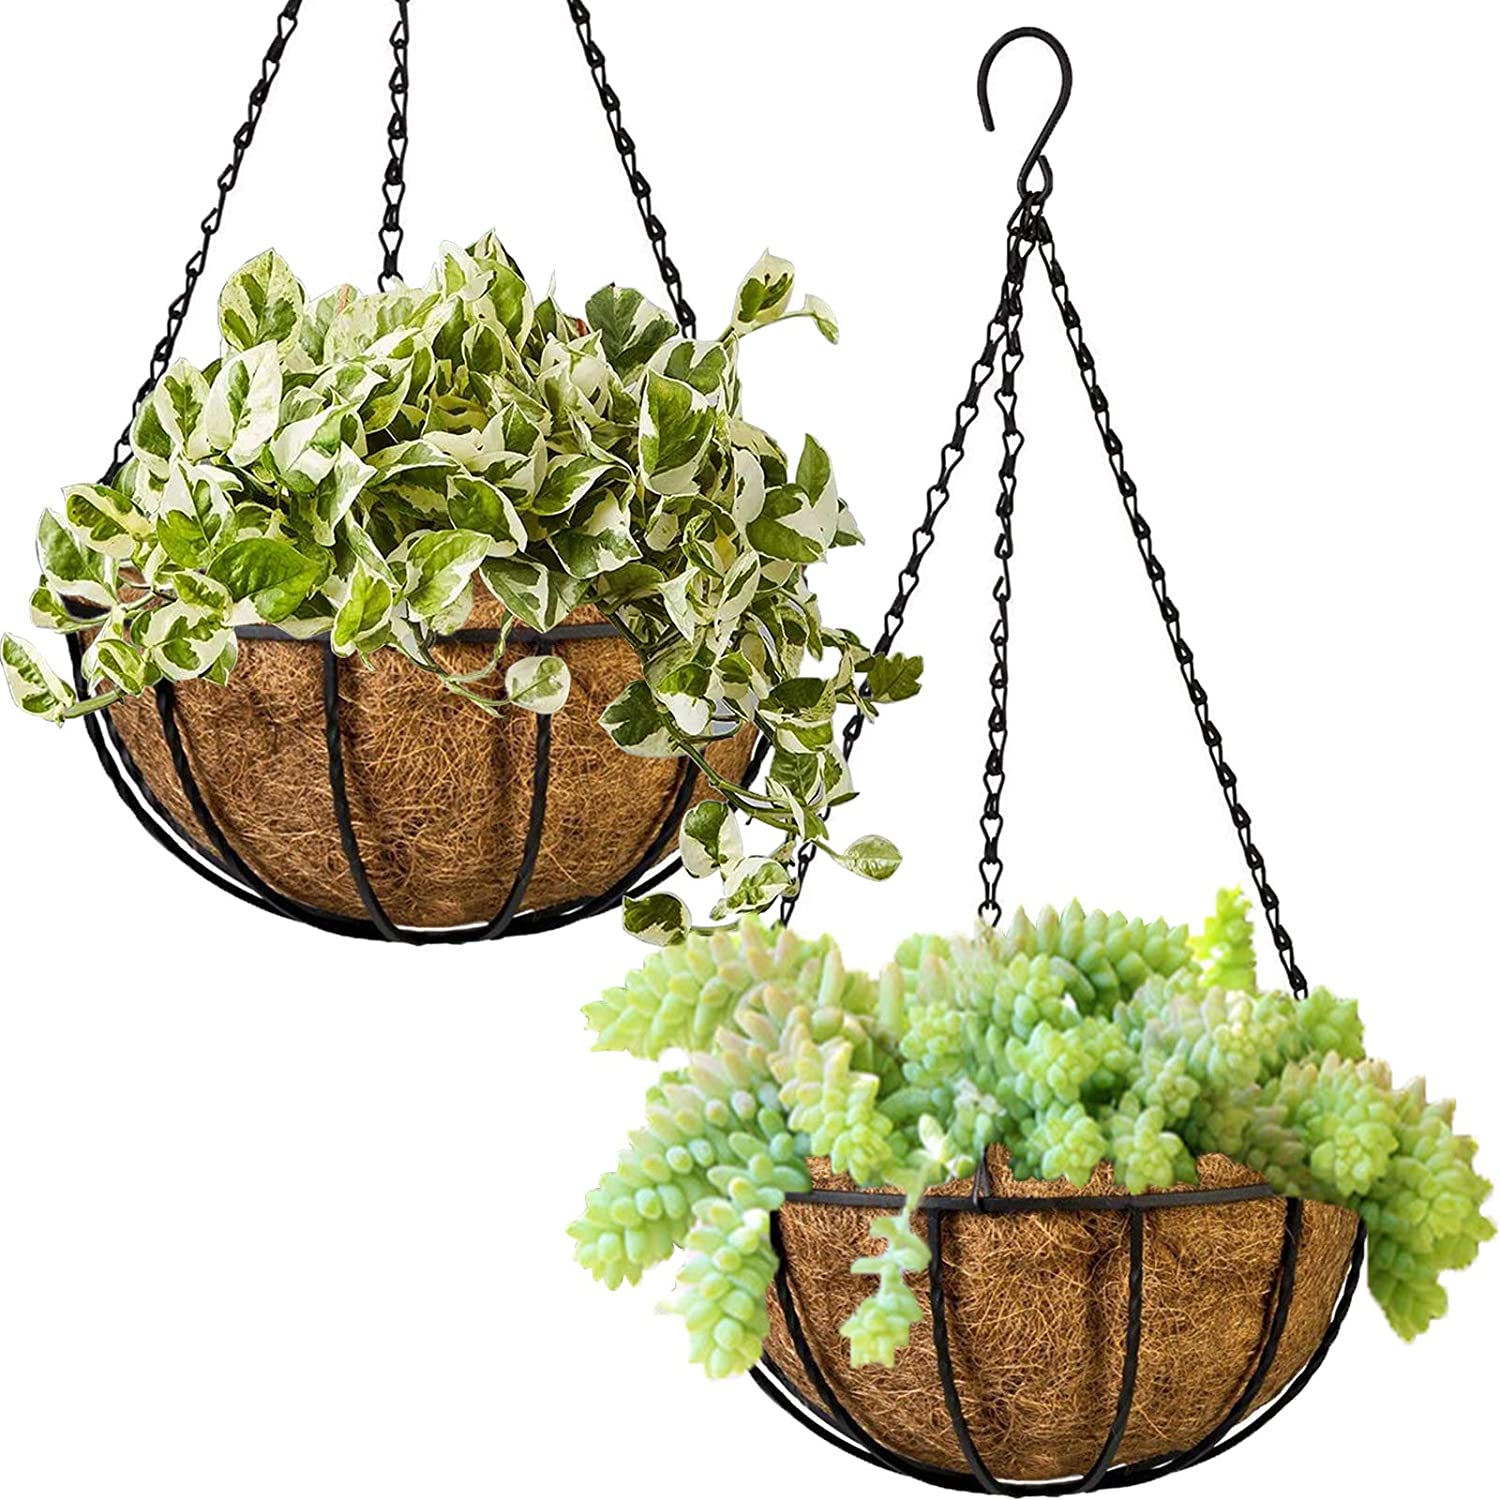 Dokimiya Metal Hanging Planter Basket Flower Pot with Coconut Coir Liner 8 Inch Round Wire Plant Holder with Chain for Indoor Outdoor Garden Home Balcony Office Decor, 2 Pack